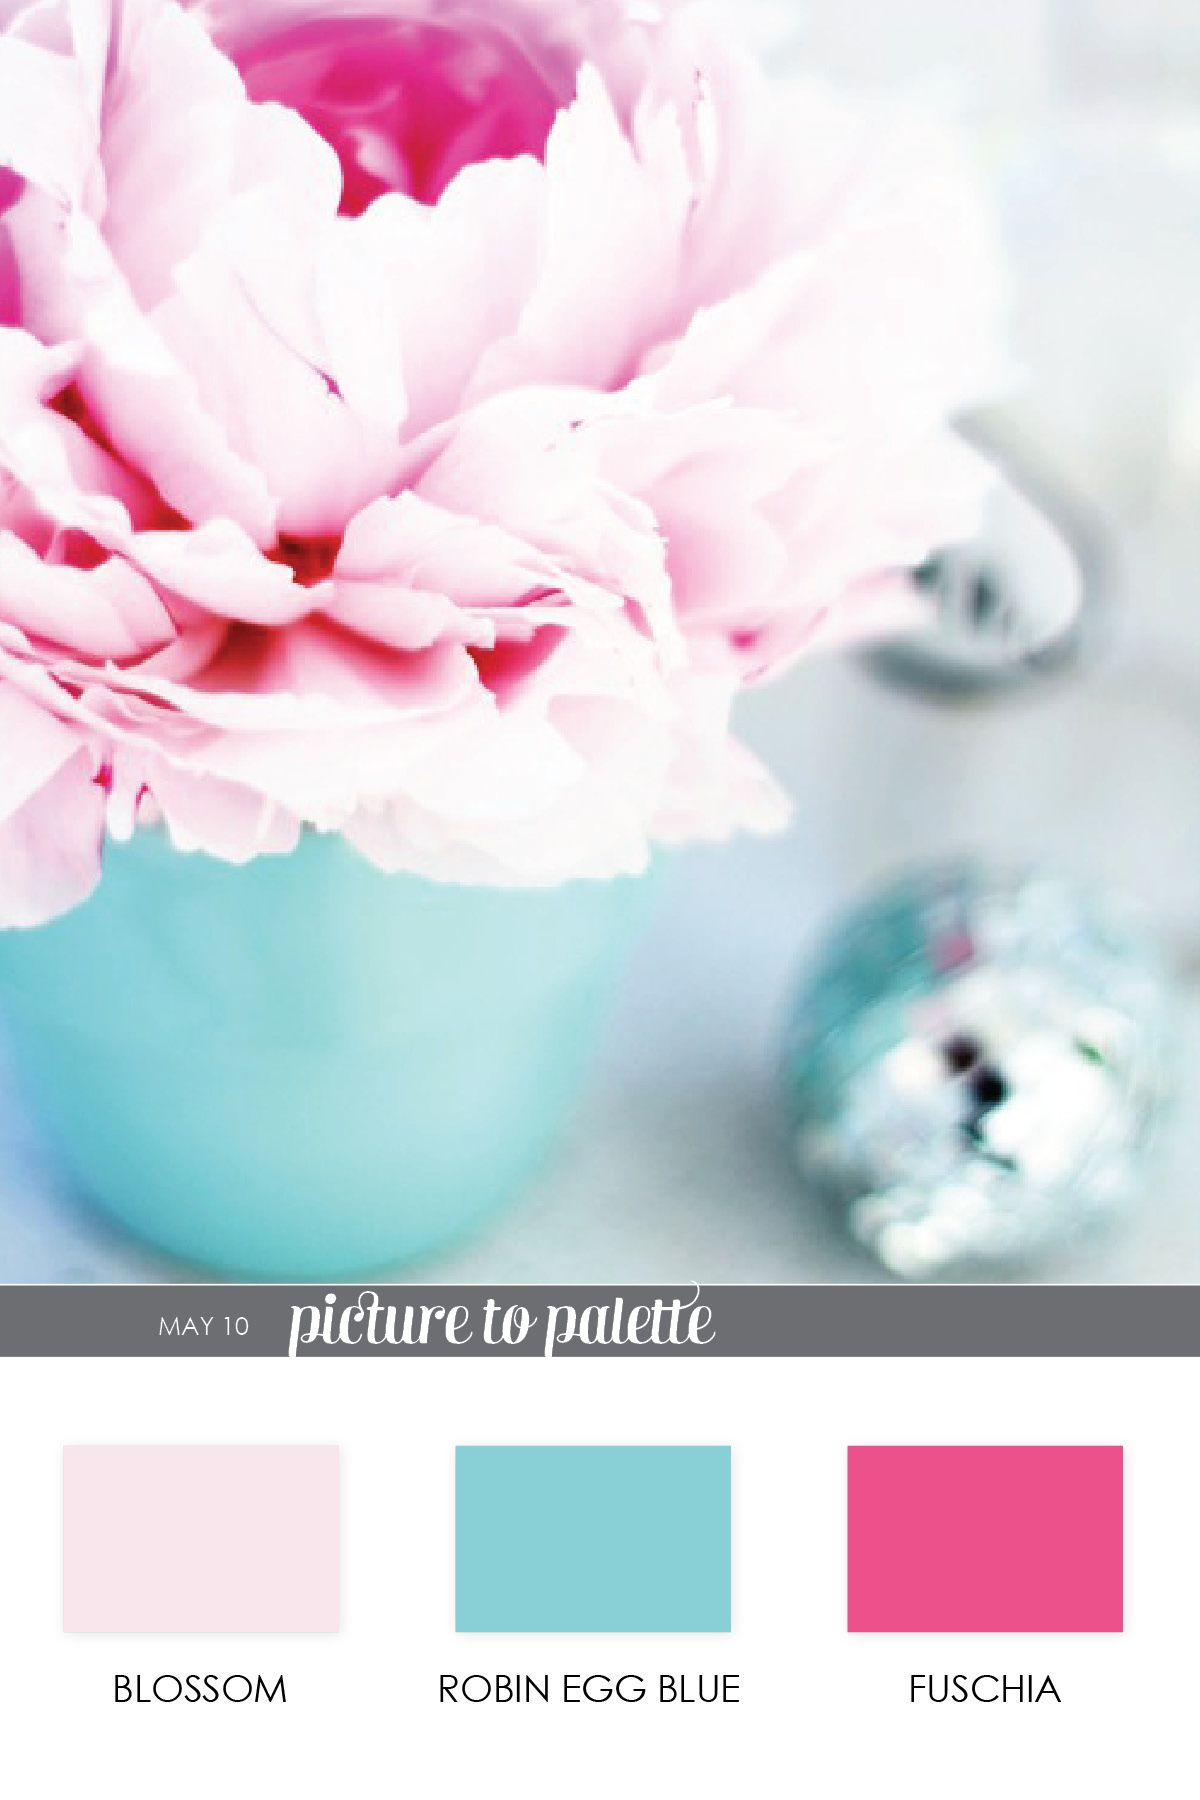 Robin Egg Blue And Shades Of Pink With Images Pink Wallpaper